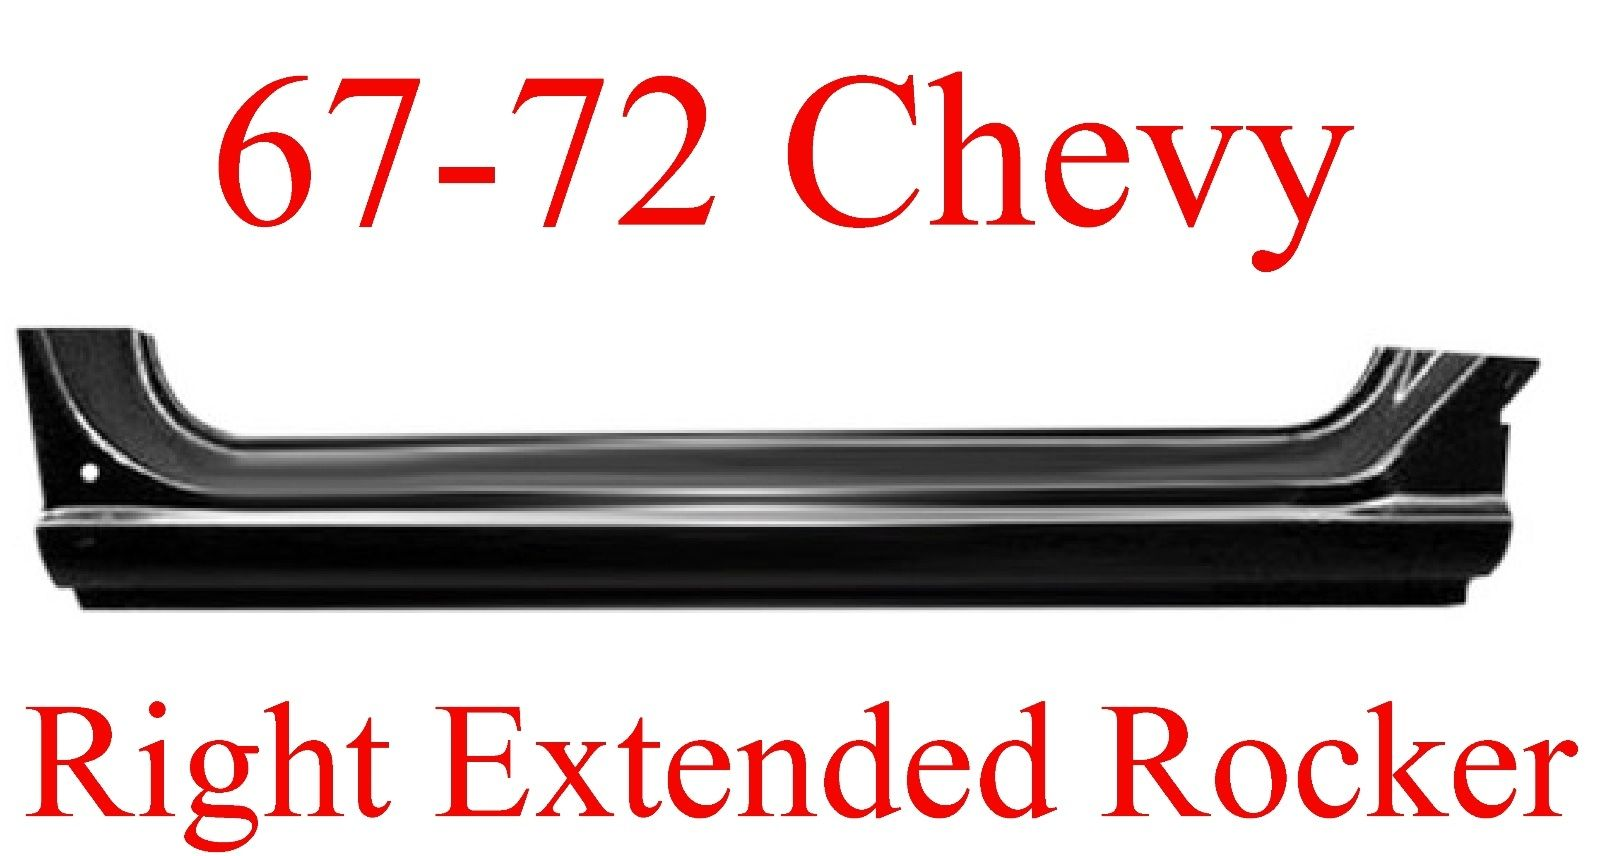 67 72 Chevy RIGHT Extended Rocker Panel